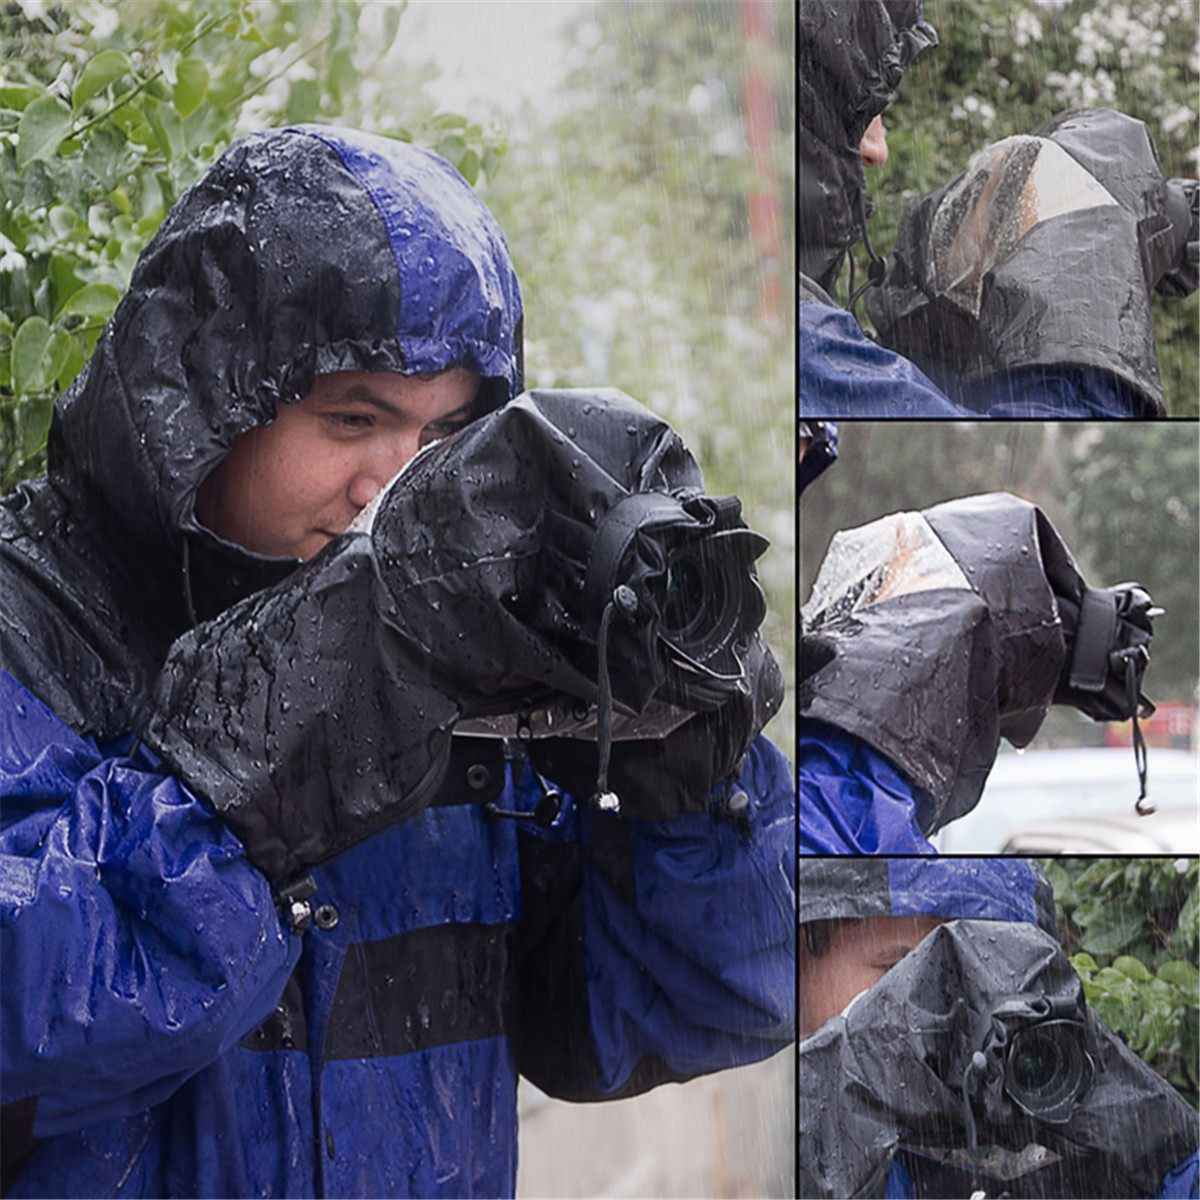 Waterproof Case Nylon Rain Cover Photo Photography Accessories Protection Cover For DSLR Camera Outdoors Shooting Gear Kit